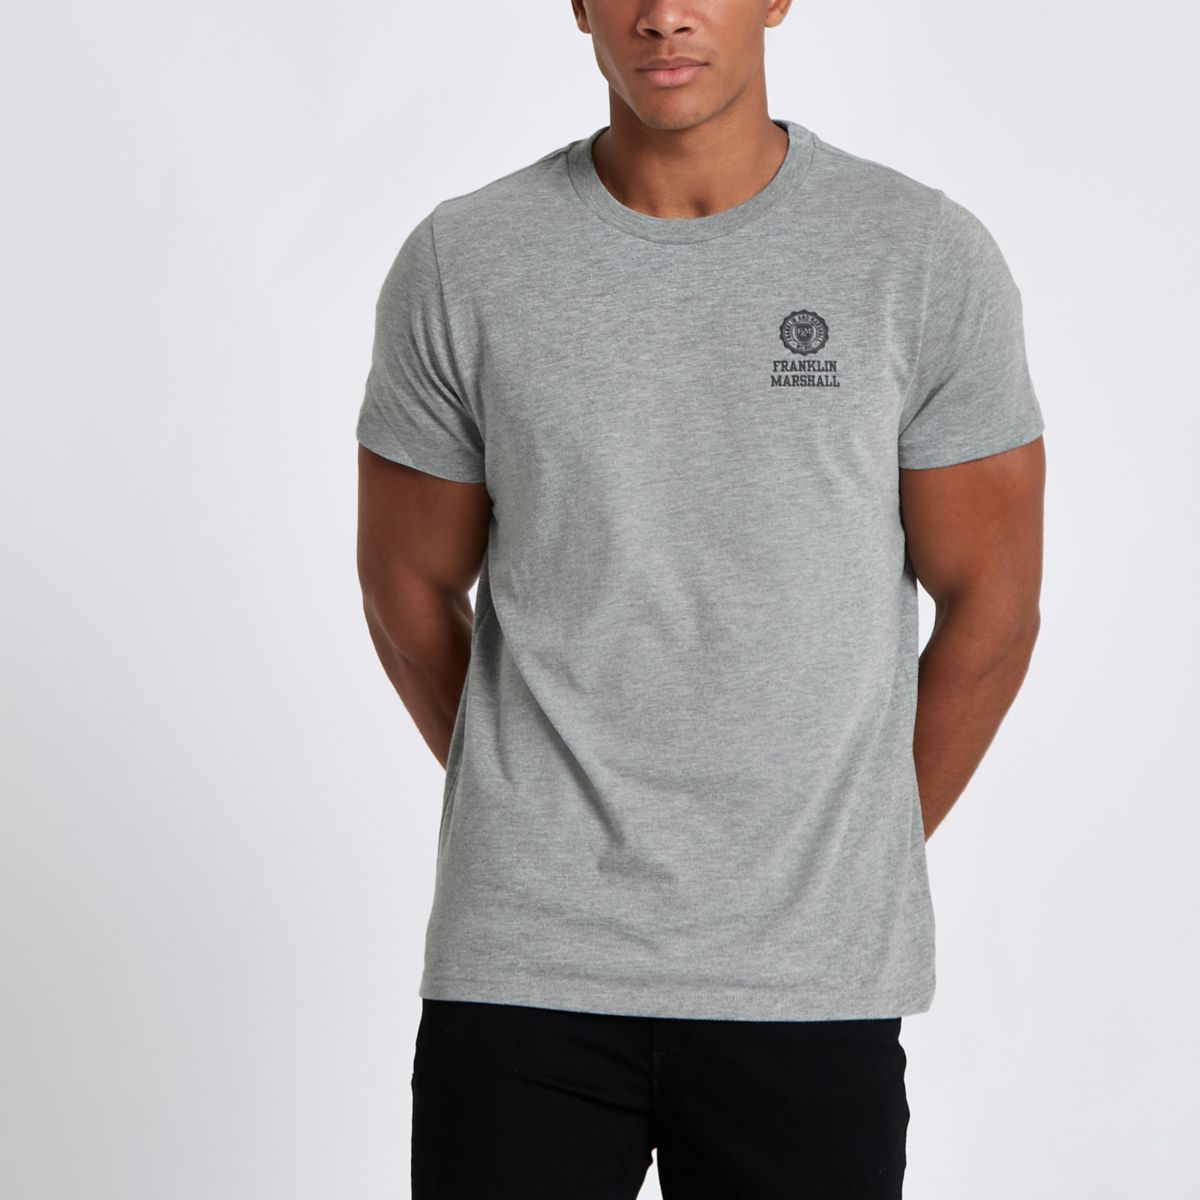 Grey Franklin & Marshall crew neck T-shirt